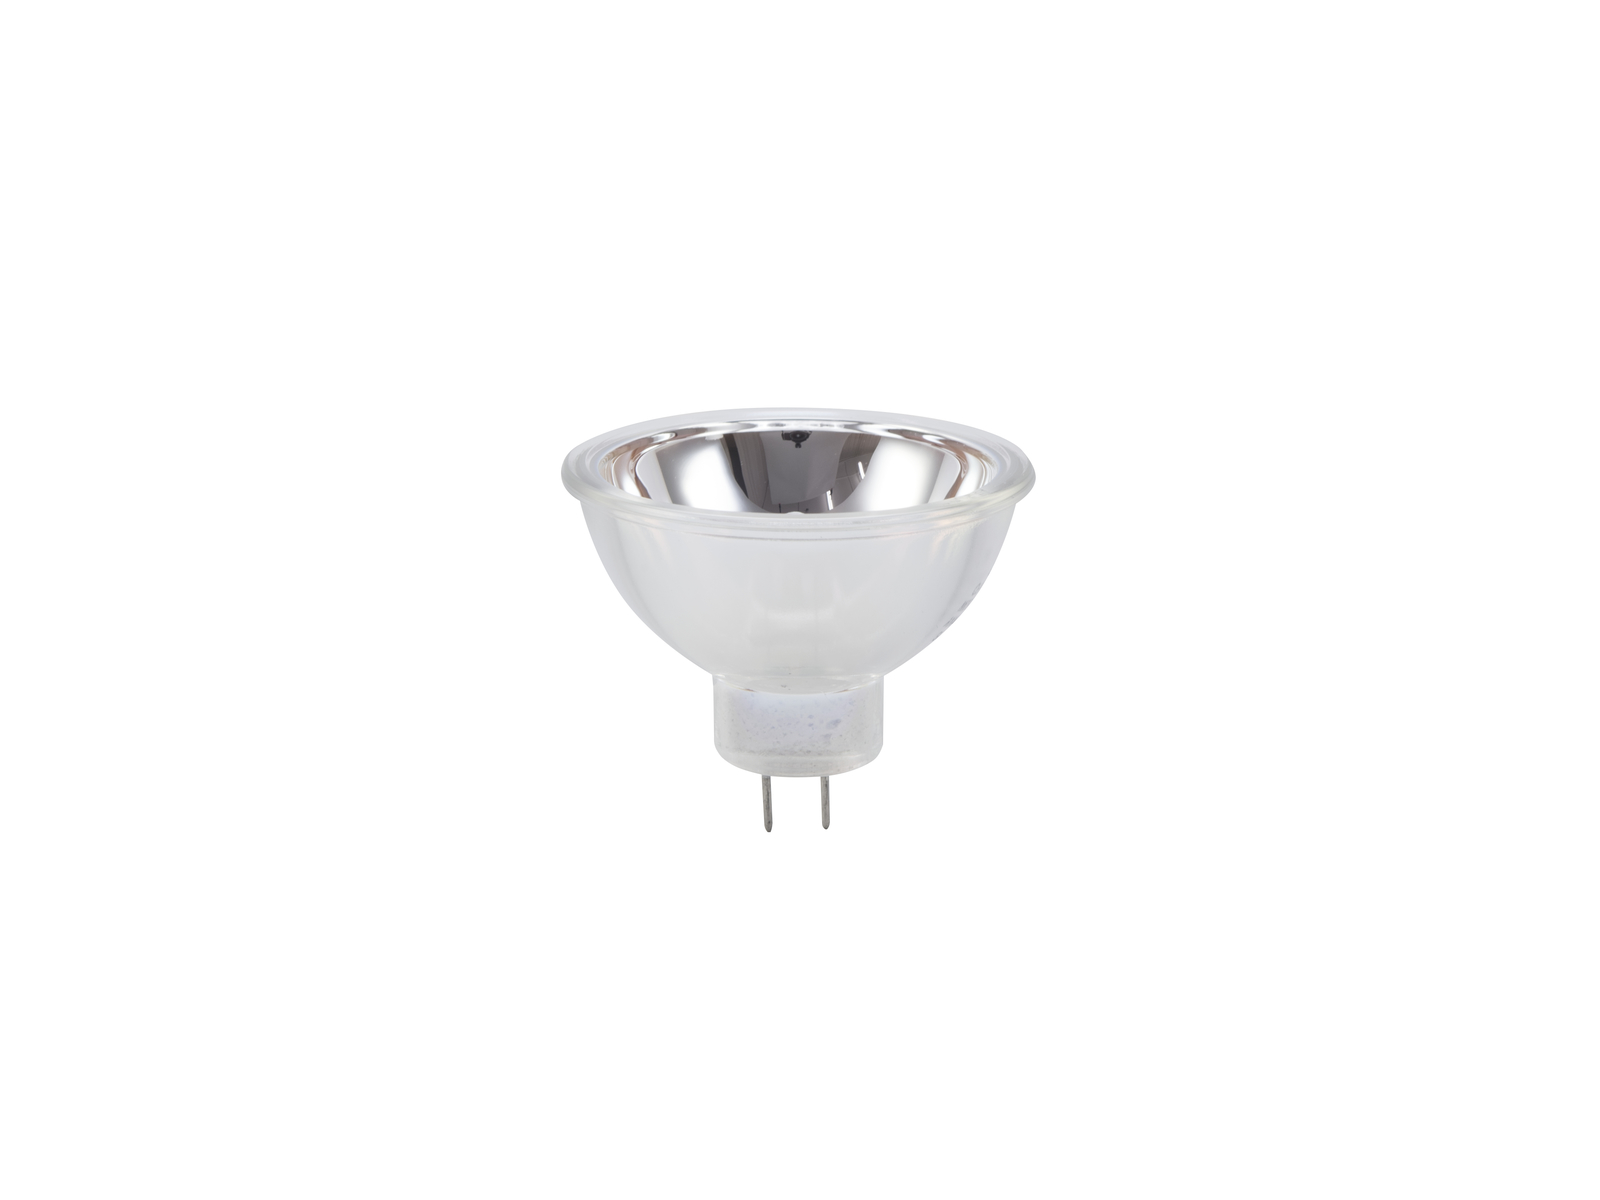 PHILIPS EFR 15V/150W 50h 50mm